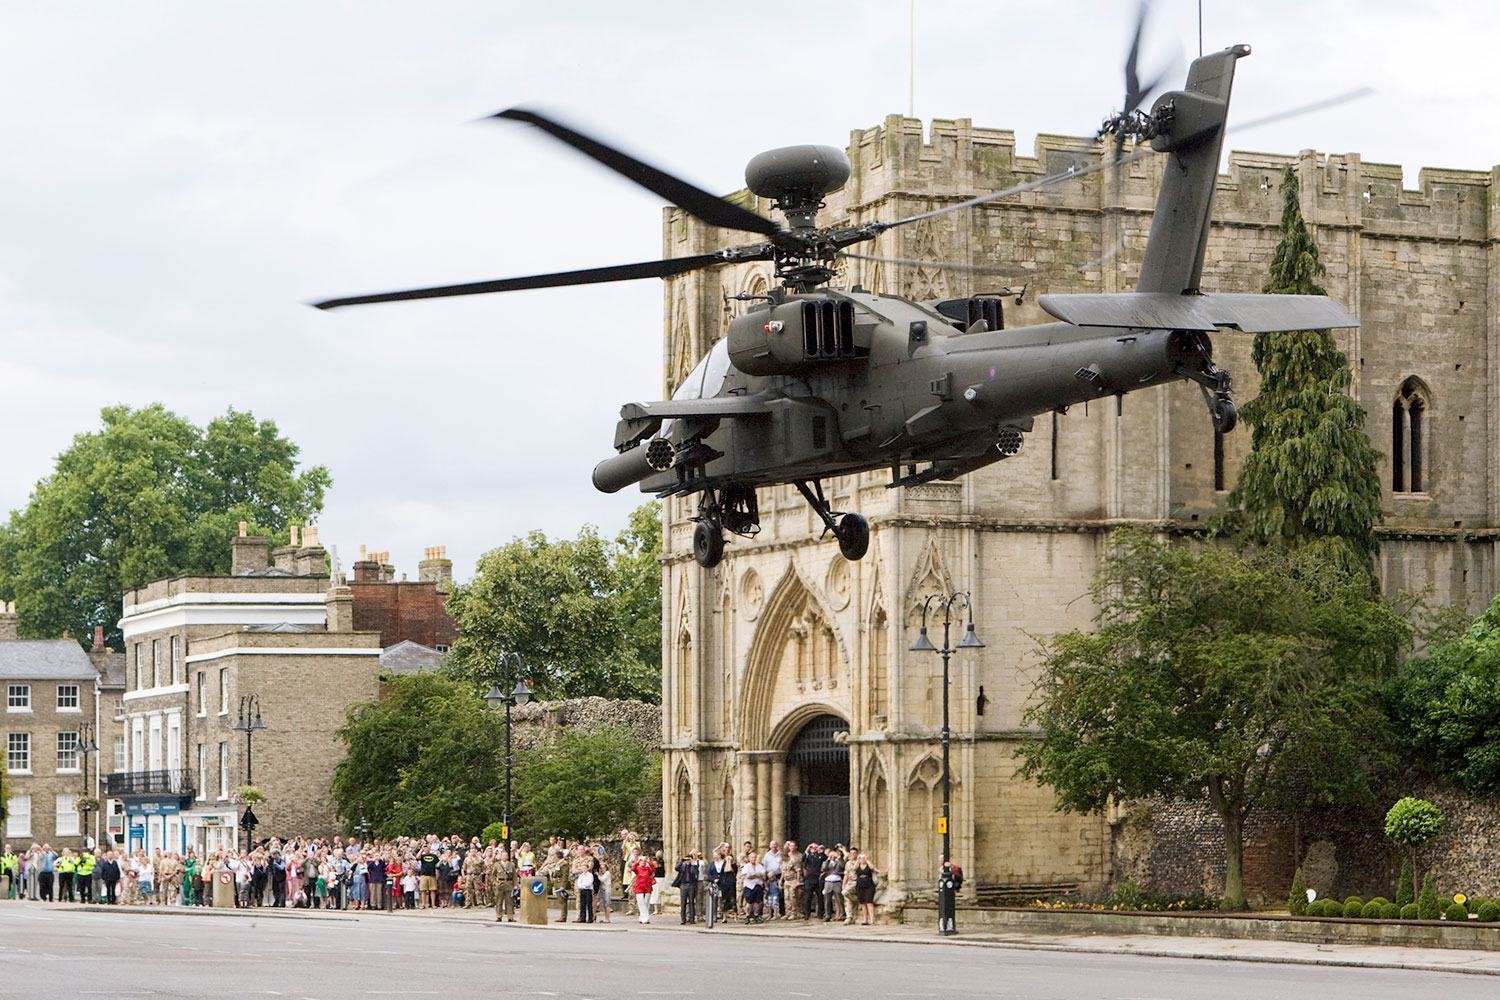 An Apache helicopter from RAF Wattisham flying over Angel Hill, Bury St Edmunds.